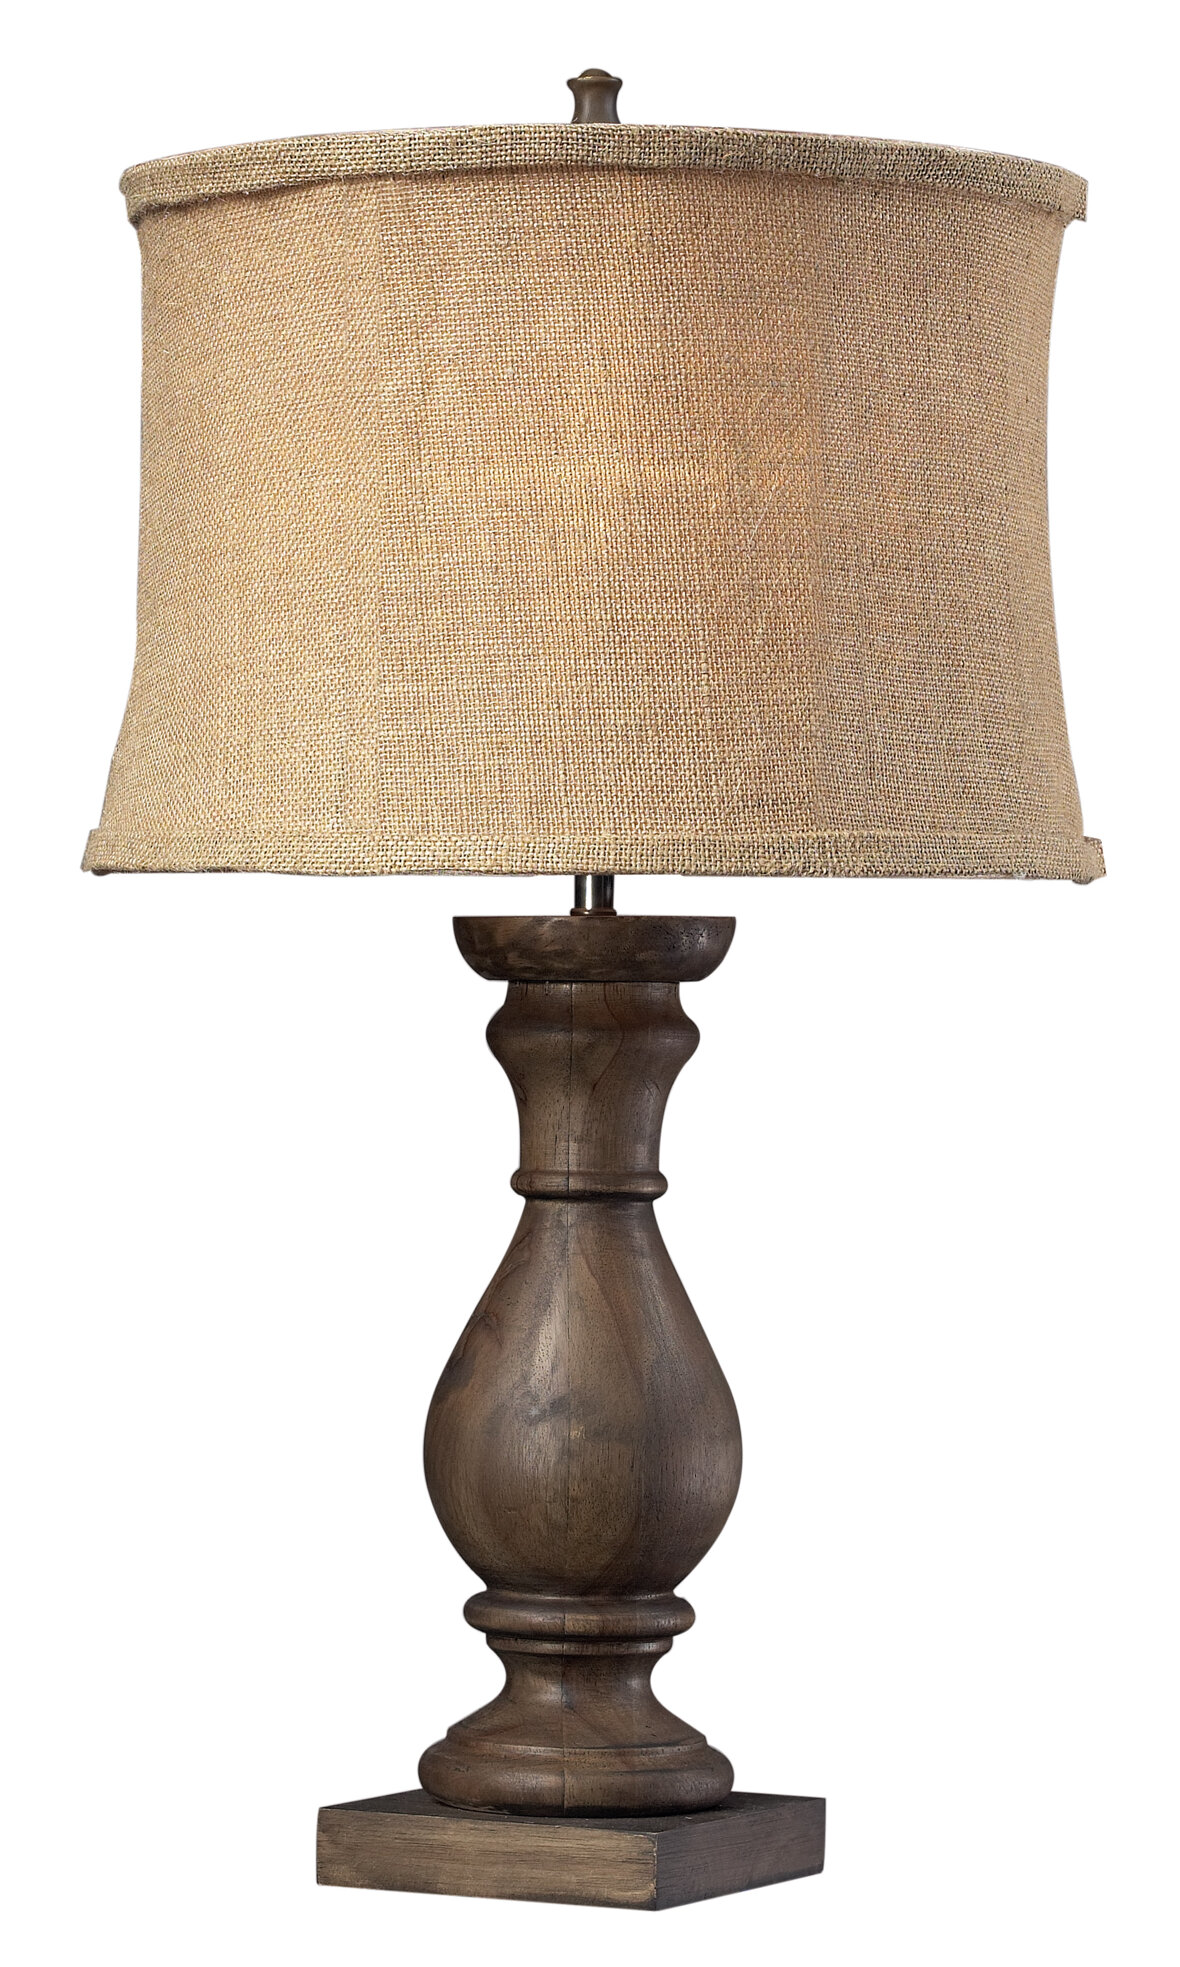 details about dimond lighting pisgah 27 h table lamp with oval shade. Black Bedroom Furniture Sets. Home Design Ideas